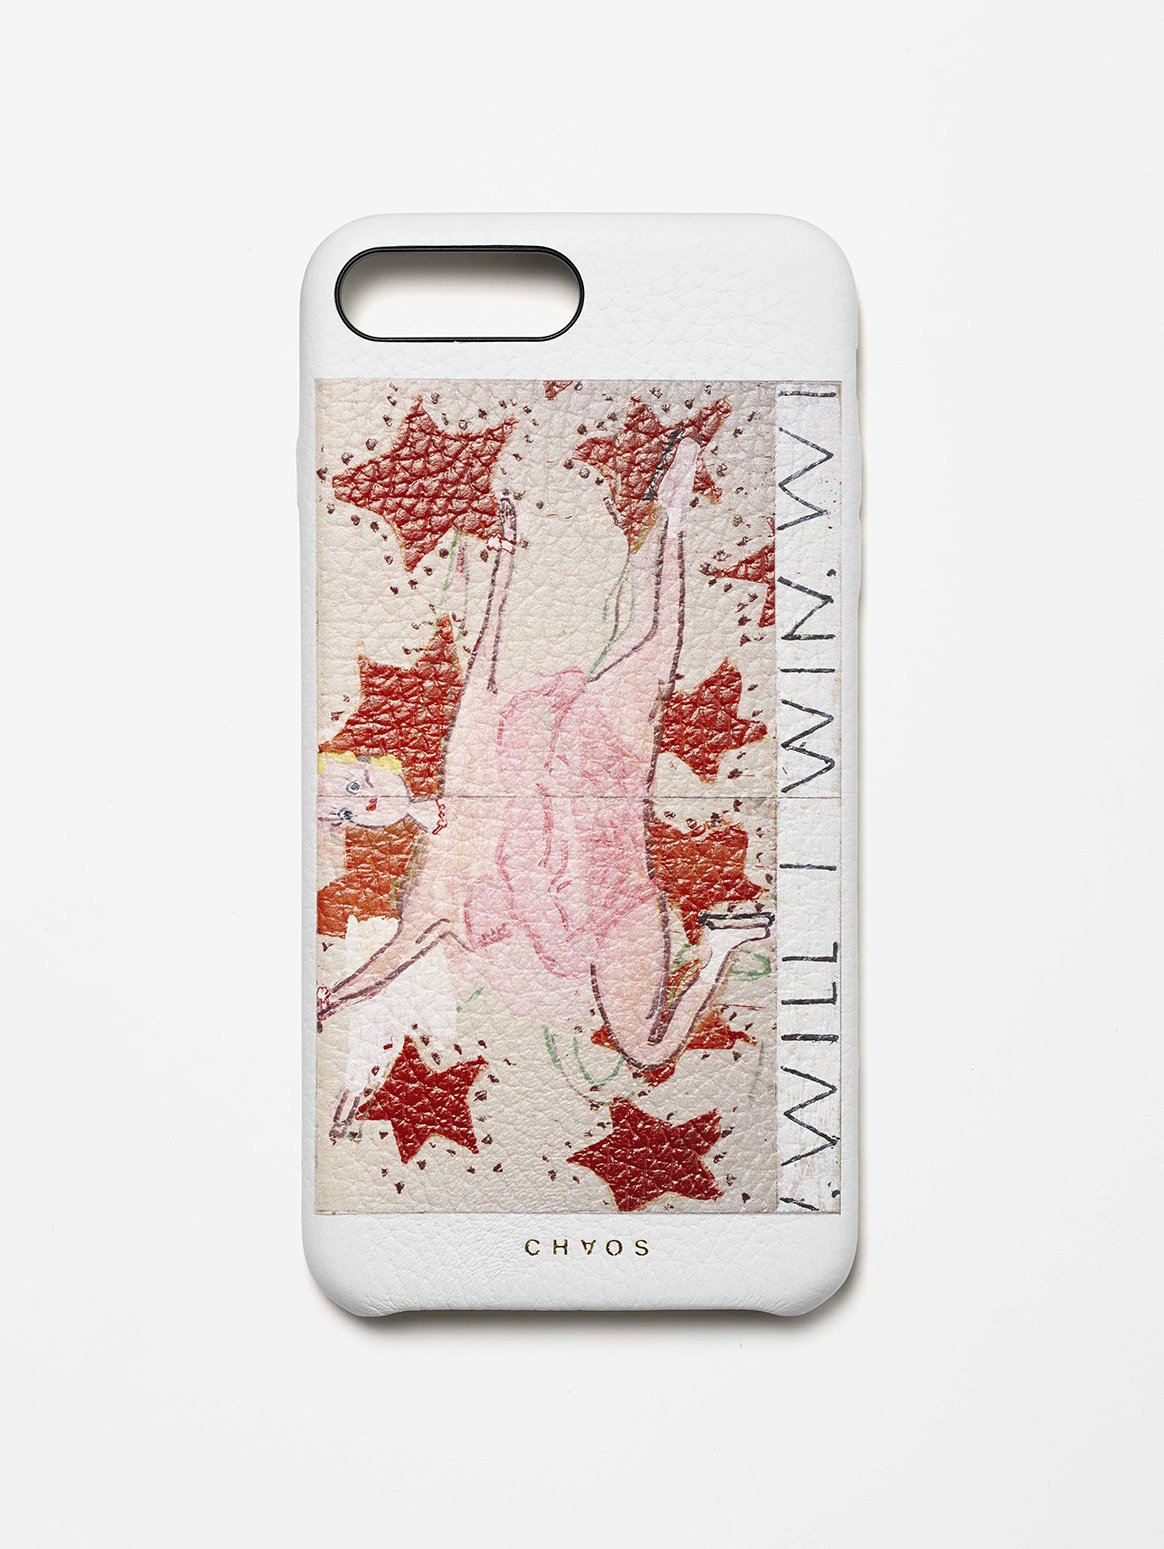 Chaos X Rose Wylie with The Serpentine Galleries Pink Skater Classic Leather iPhone Case